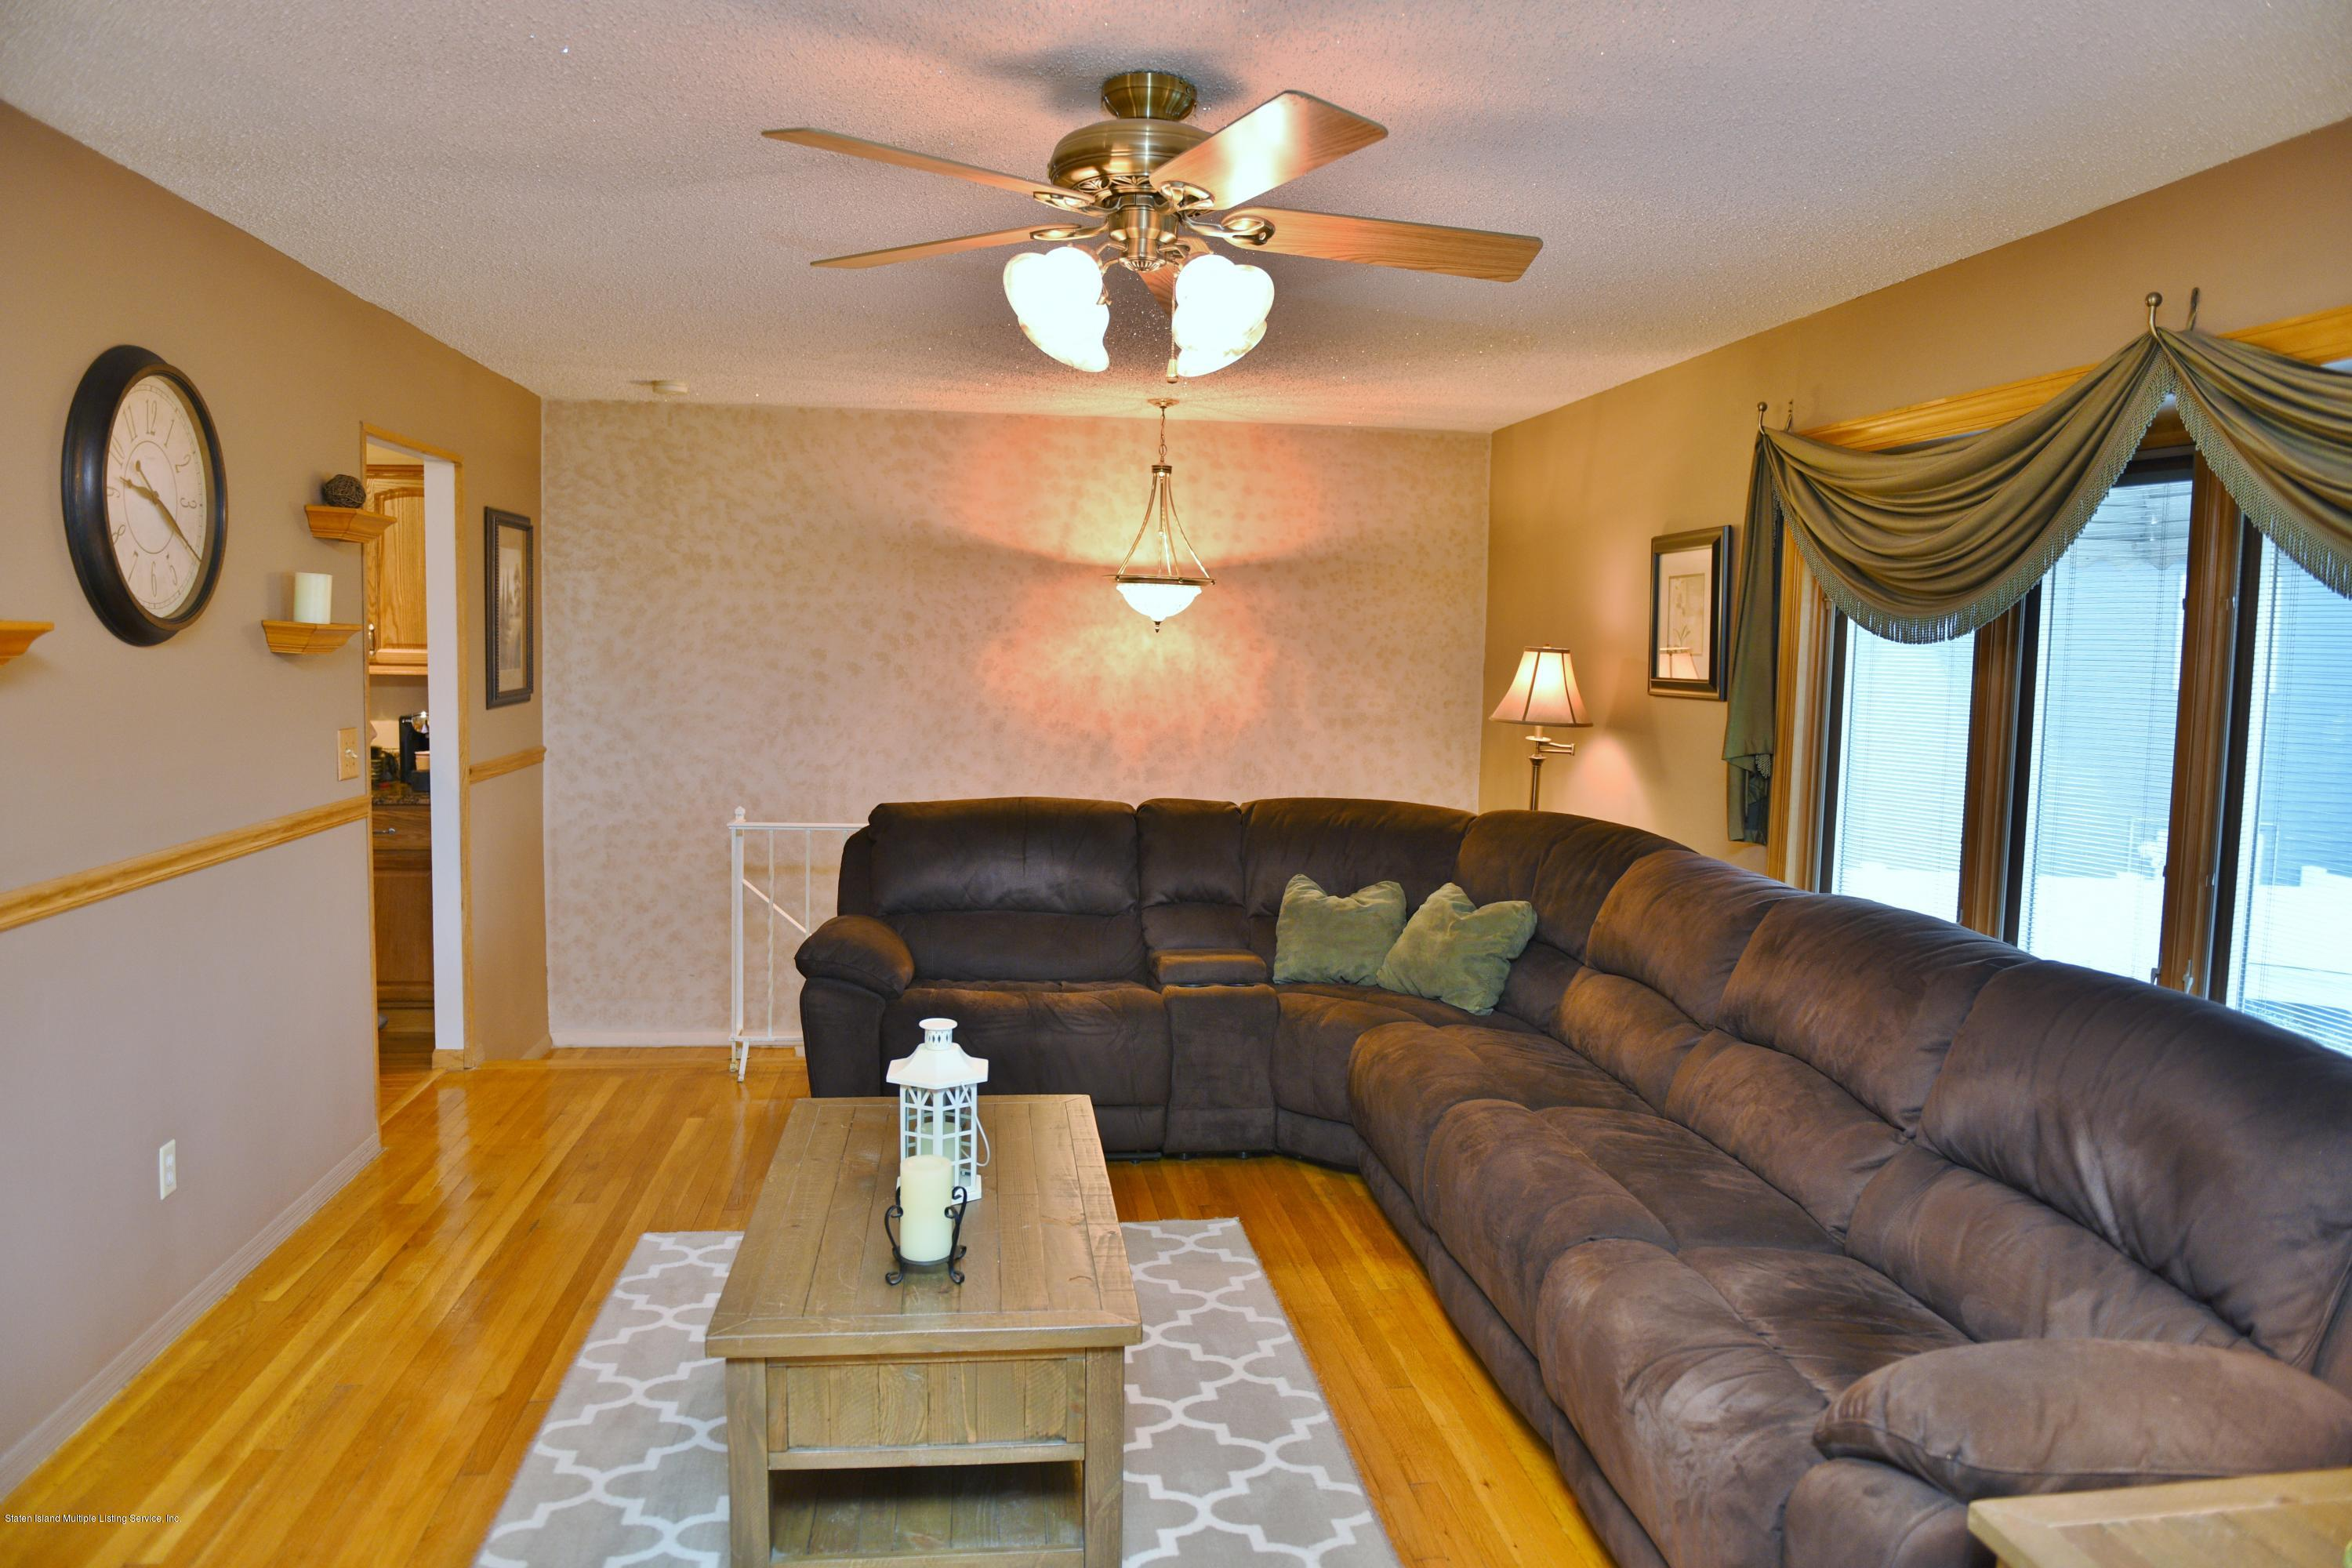 Single Family - Detached 41 Prices Lane  Staten Island, NY 10314, MLS-1129754-7